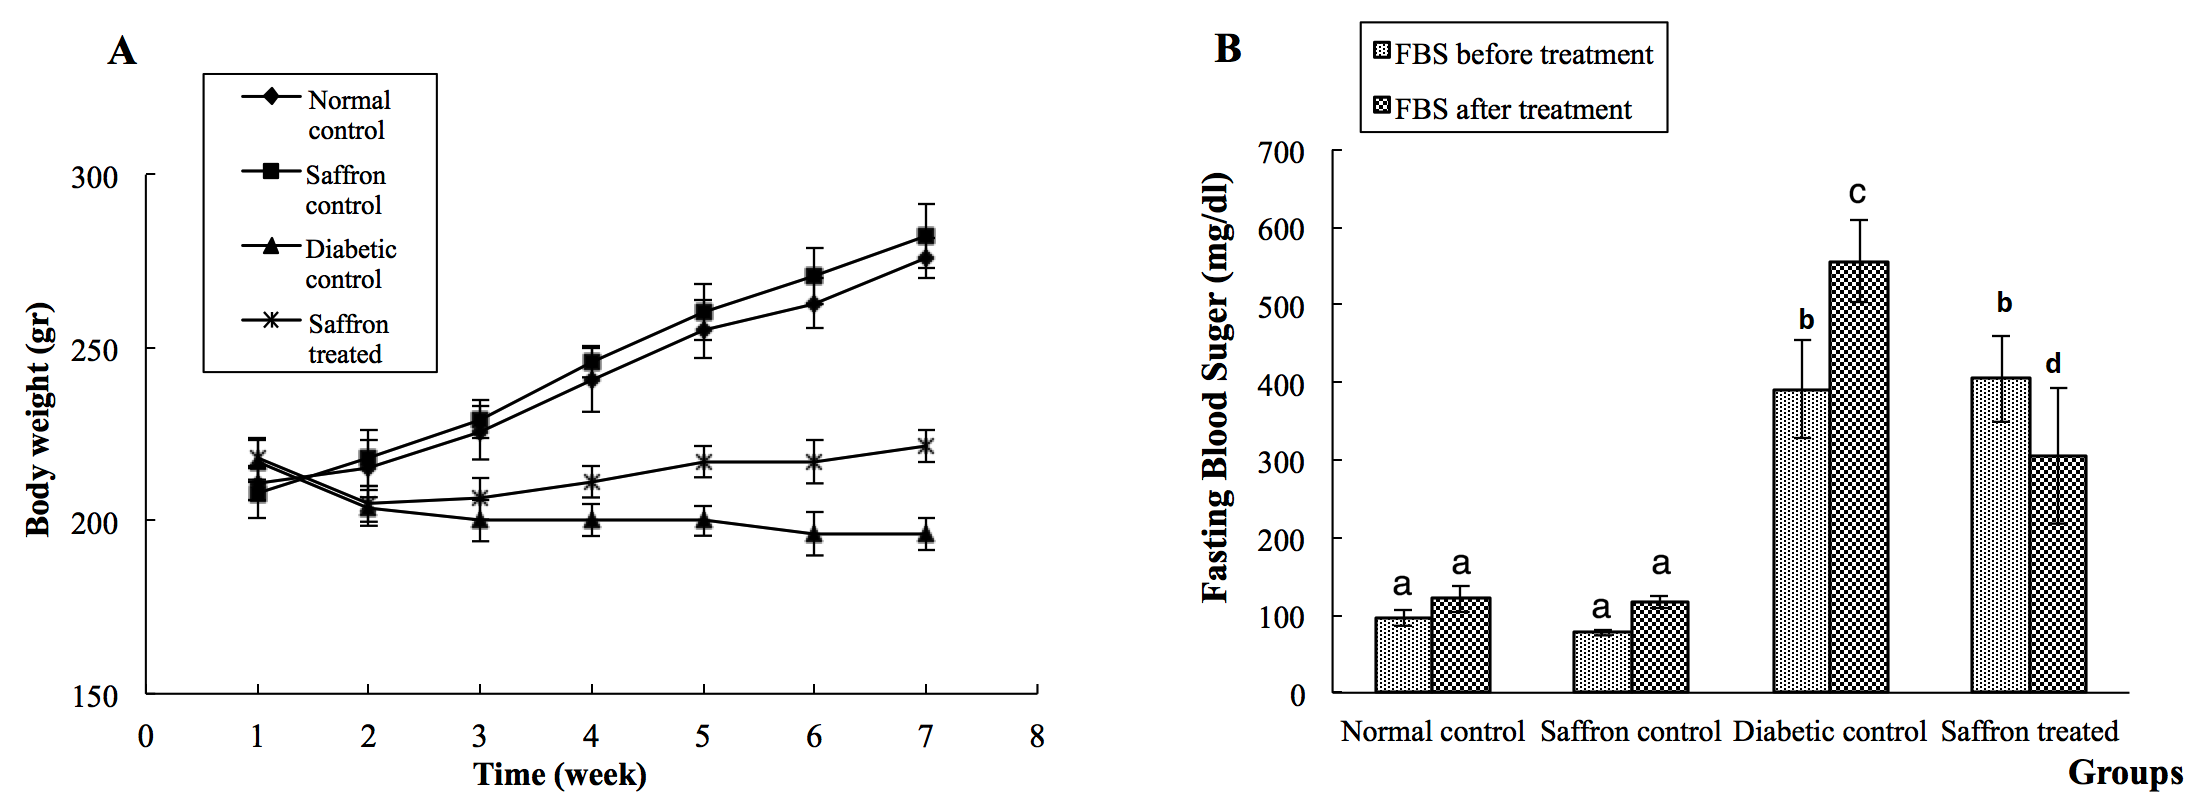 Figure 1 The effect of SAE on FBS and body weight